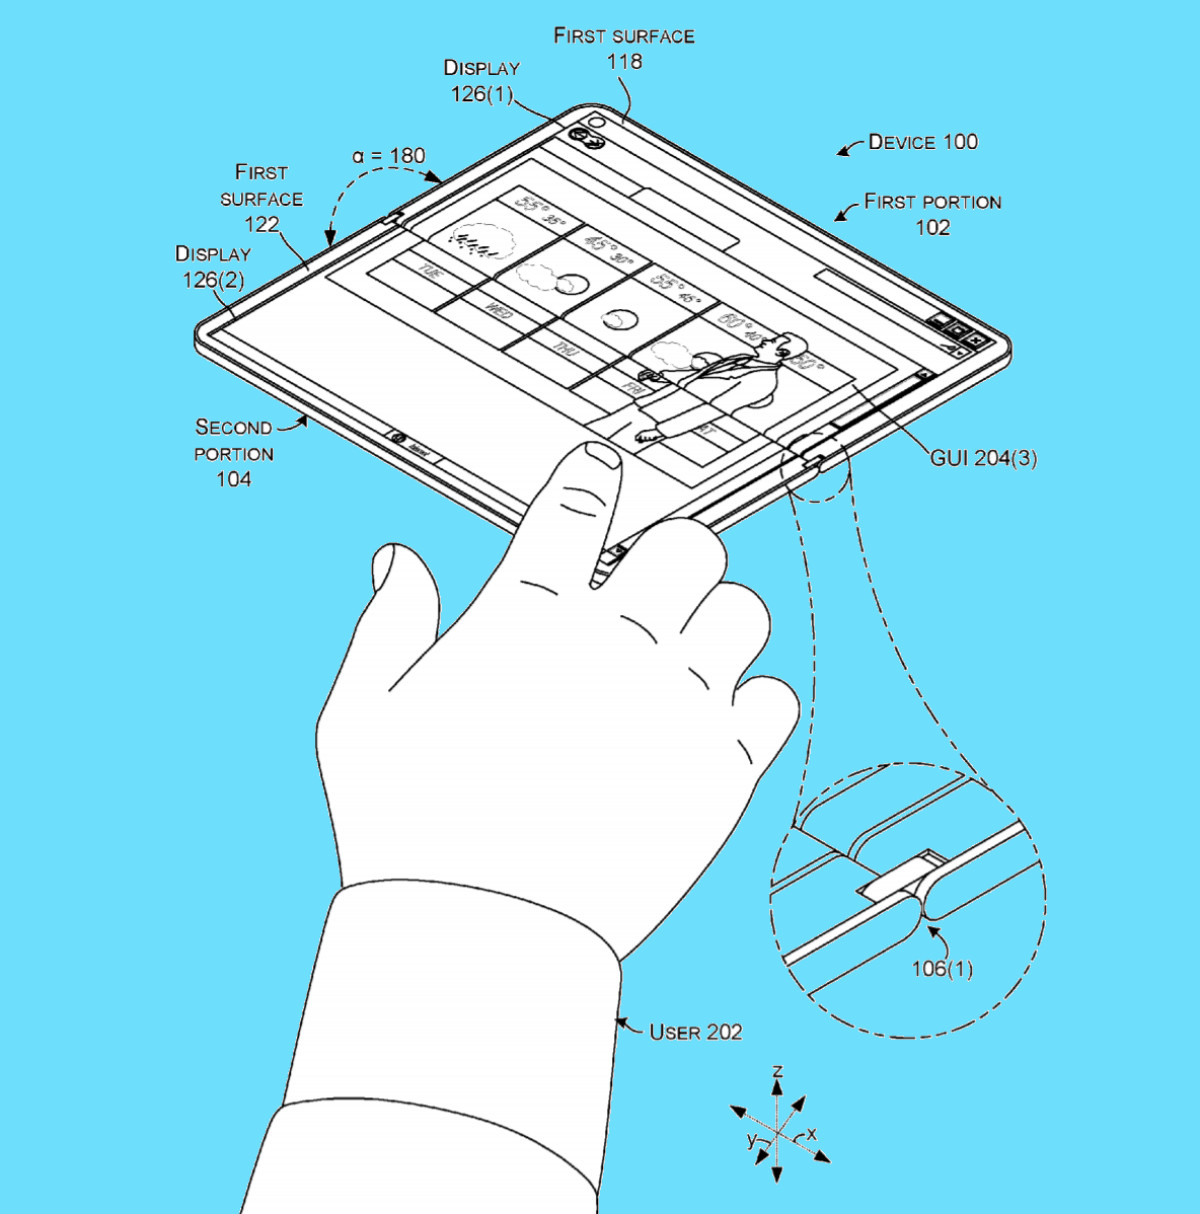 Yet Another Patent Shows Foldable Surface